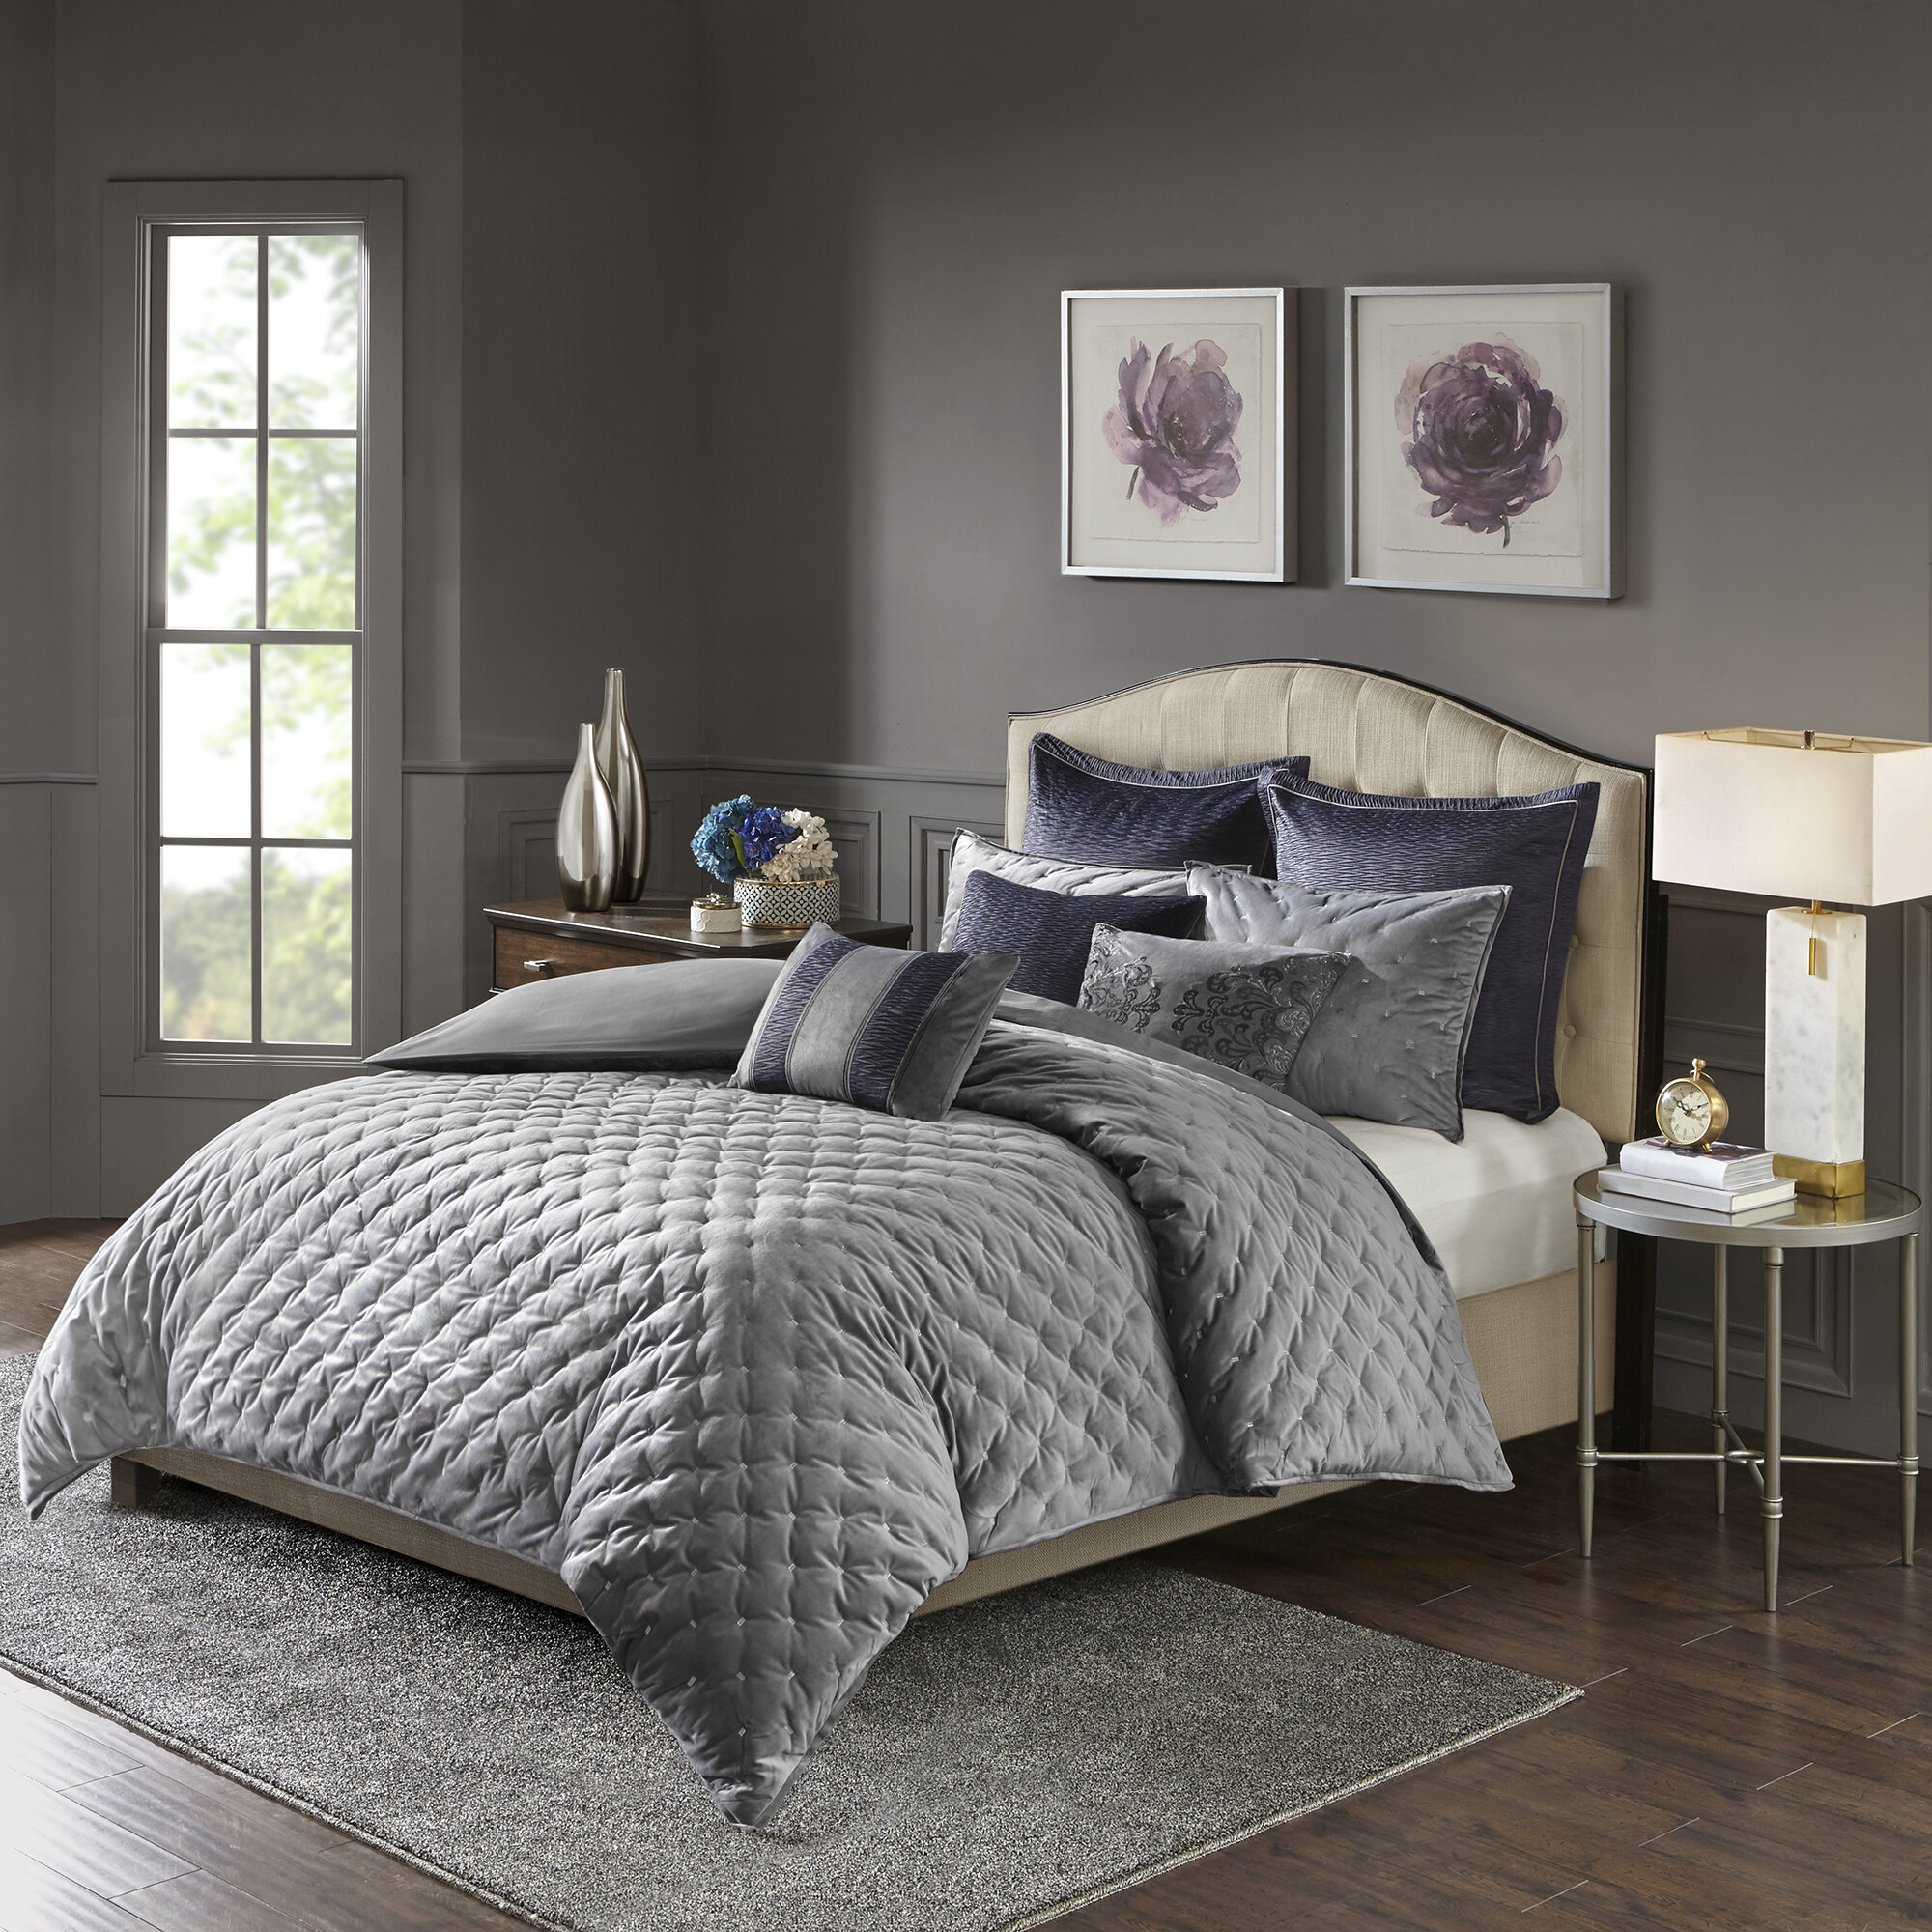 Madison Park Signature Sophisticate 8 Piece Comforter Set Reviews Wayfair